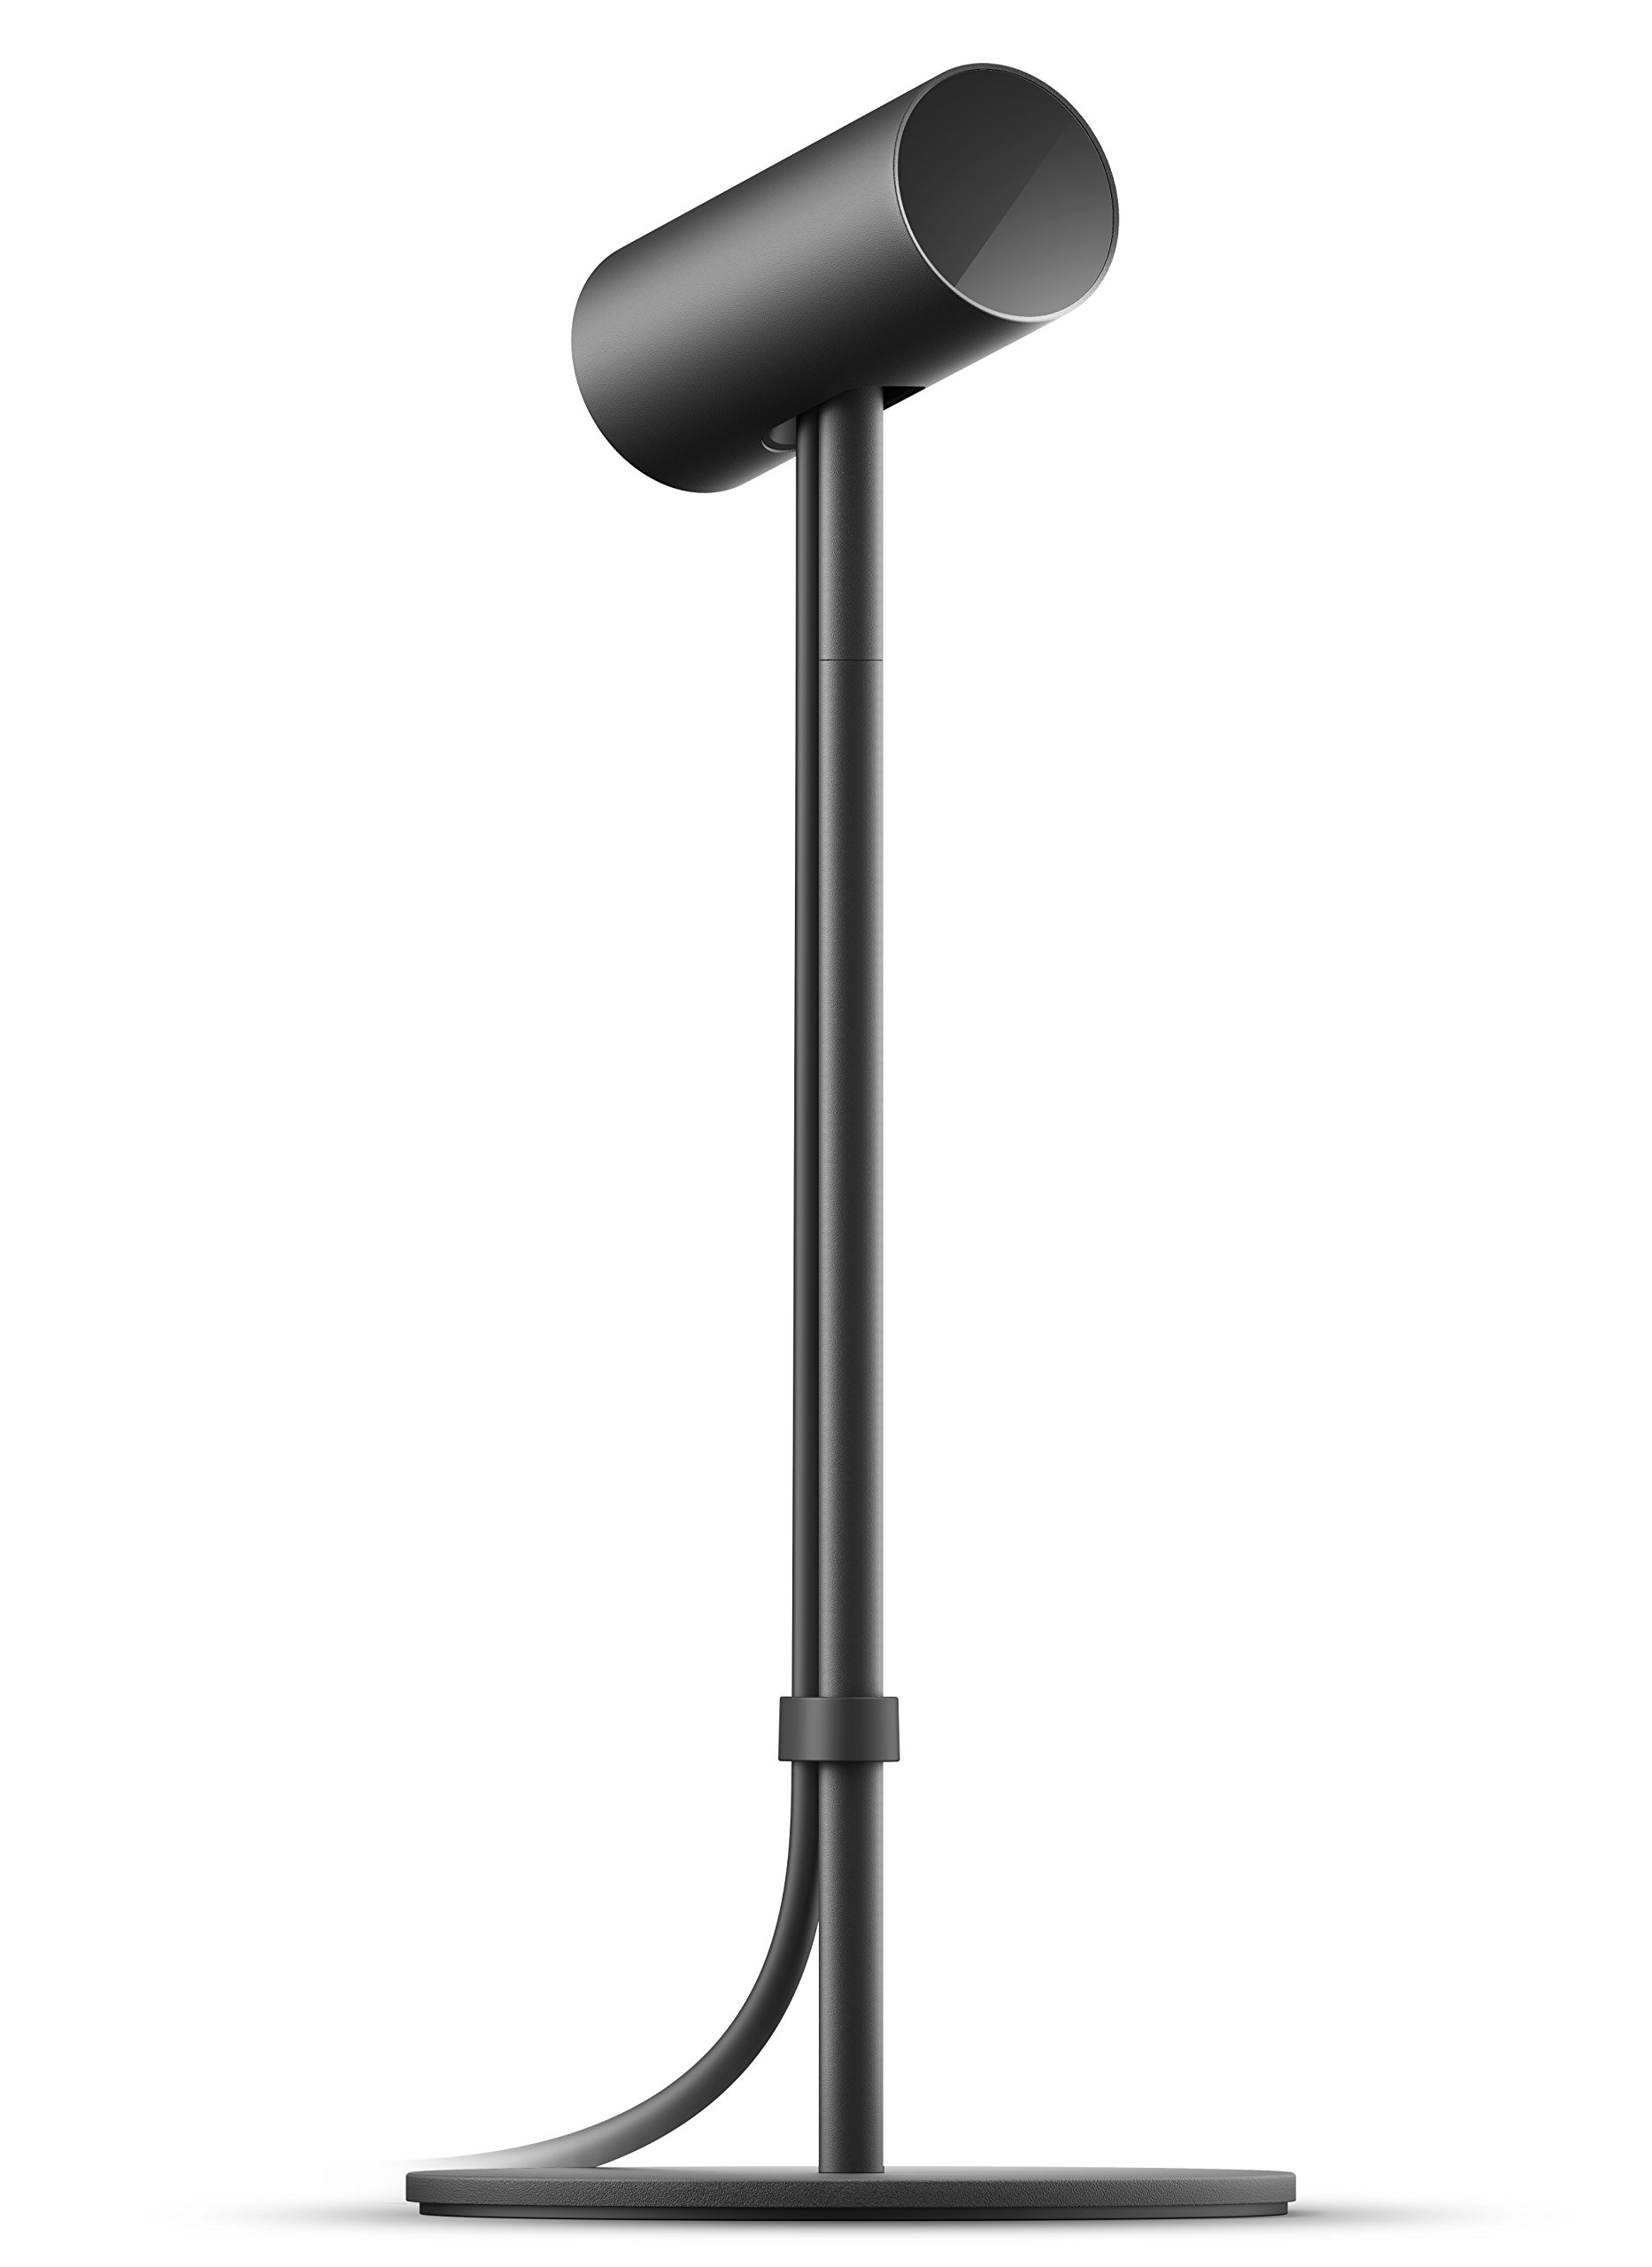 Oculus Sensor (Includes 16ft Repeater Cable)